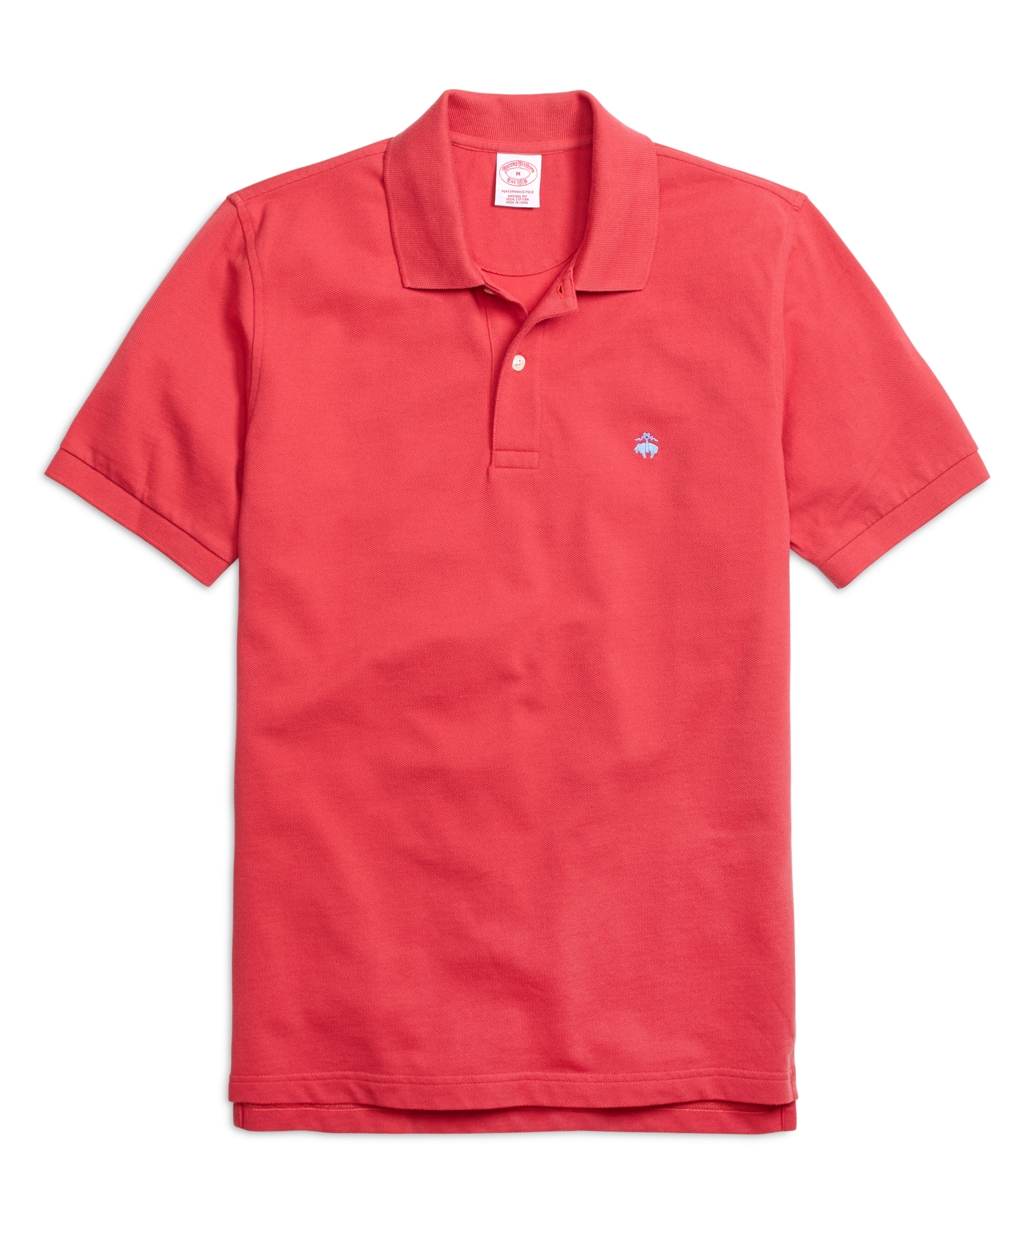 Brooks brothers golden fleece original fit performance Brooks brothers shirt size guide